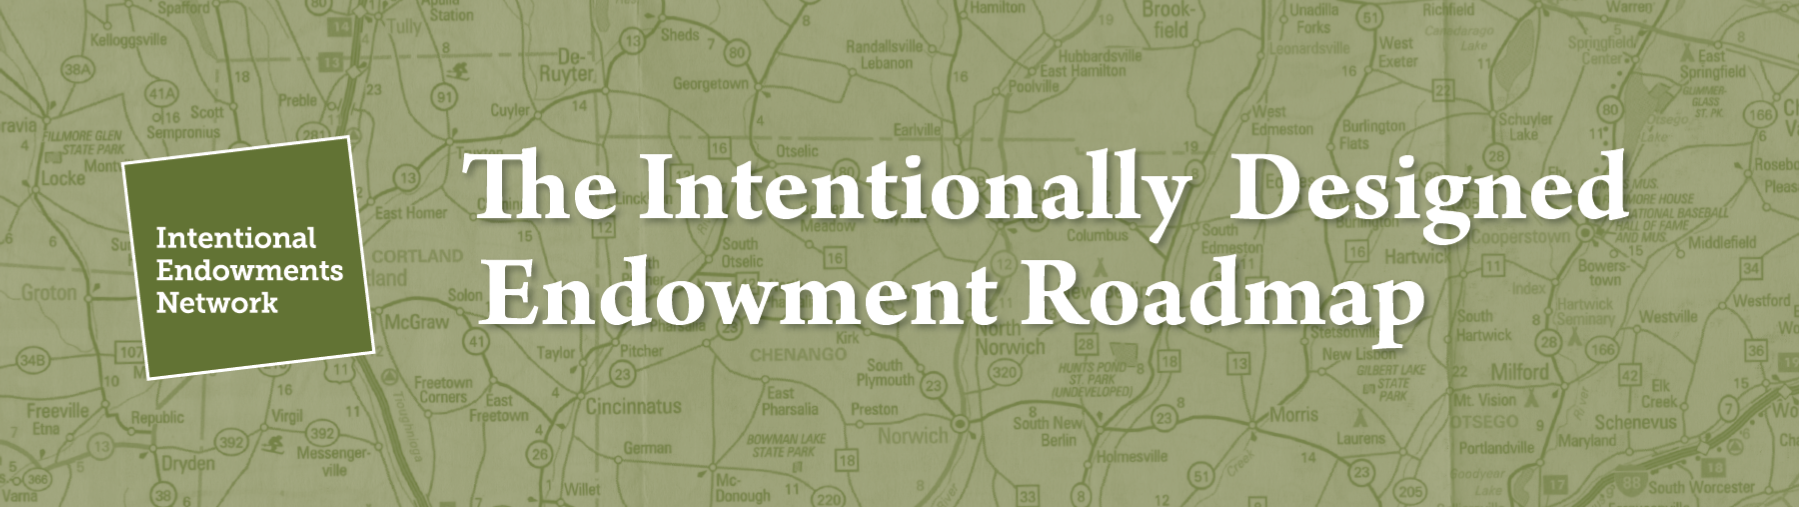 Title: The Intentionally Designed Endowment Roadmap